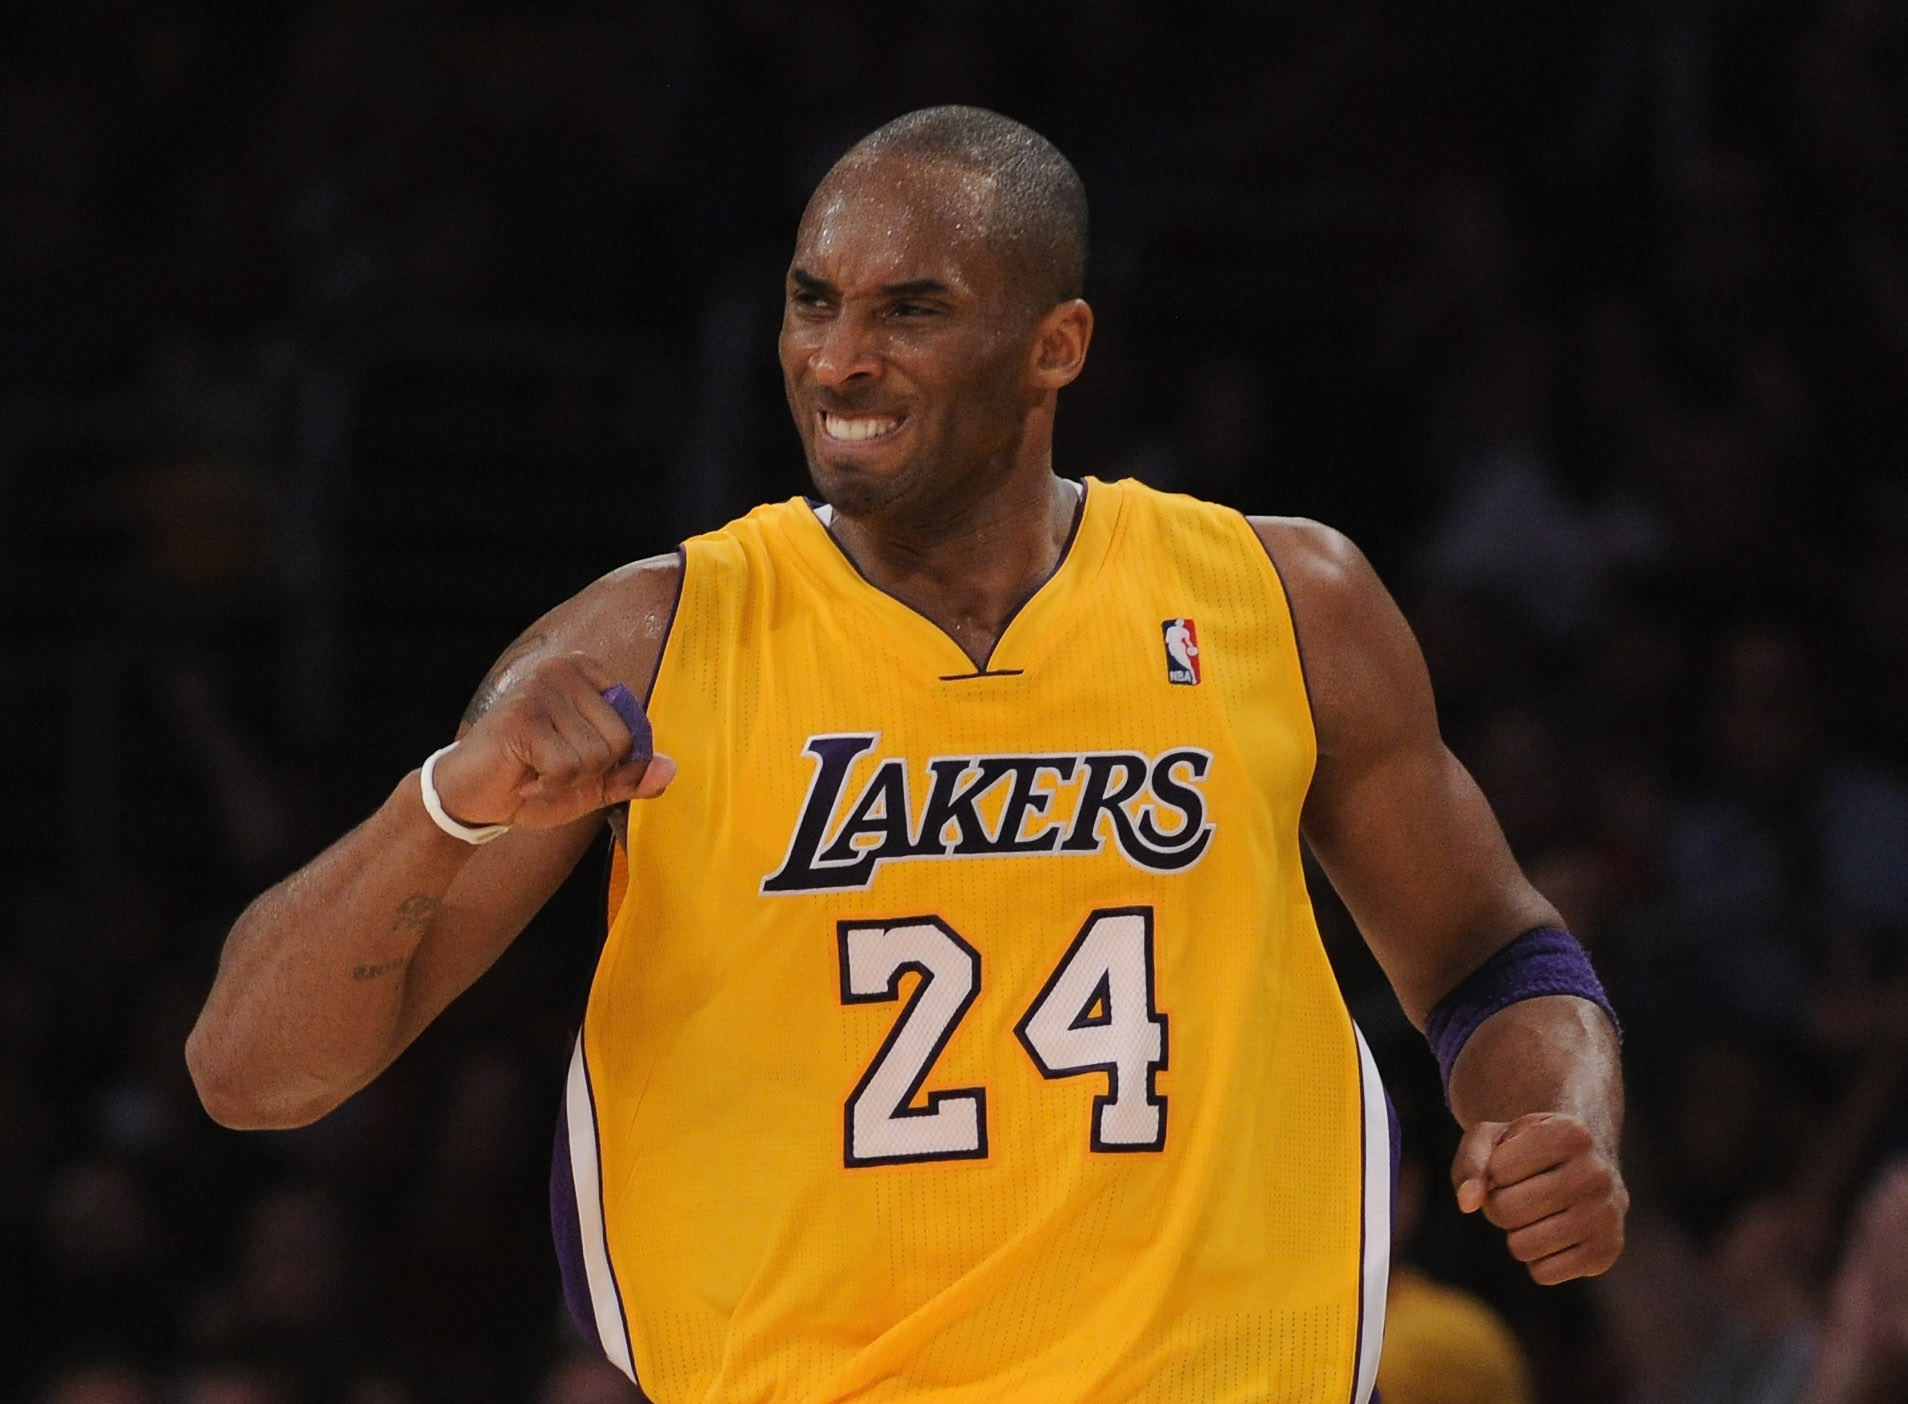 LOS ANGELES, CA - APRIL 12:  Kobe Bryant #24 of the Los Angeles Lakers celebrates his basket during a 102-93 win over the San Antonio Spurs at the Staples Center on April 12, 2011 in Los Angeles, California.  NOTE TO USER: User expressly acknowledges and